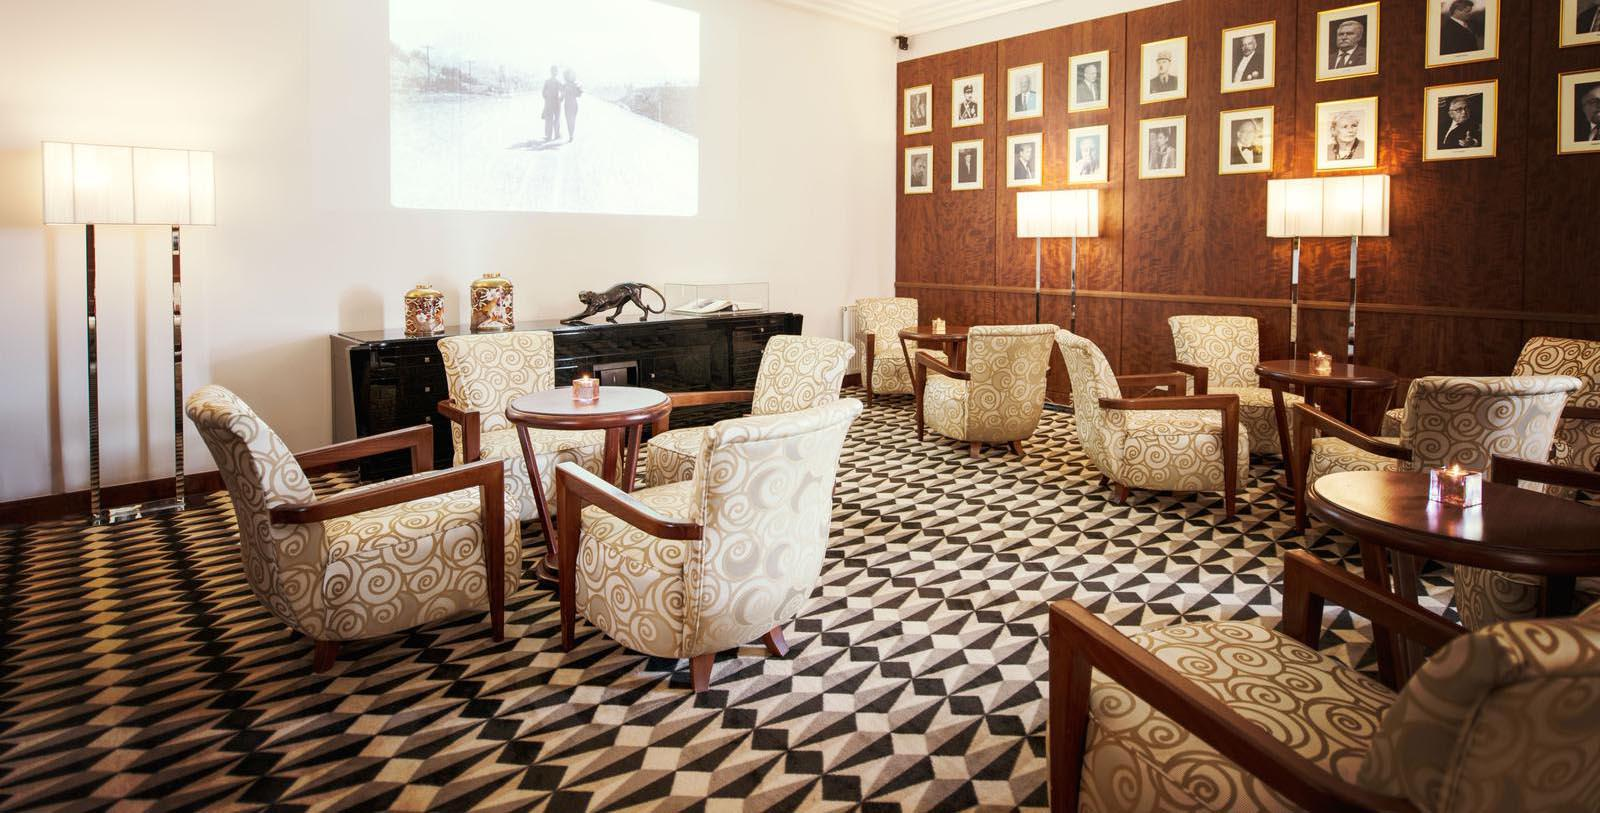 Image of Hotel Lobby Lounge at Sofitel Grand Sopot, 1927, Member of Historic Hotels Worldwide, in Sopot, Poland, Discover